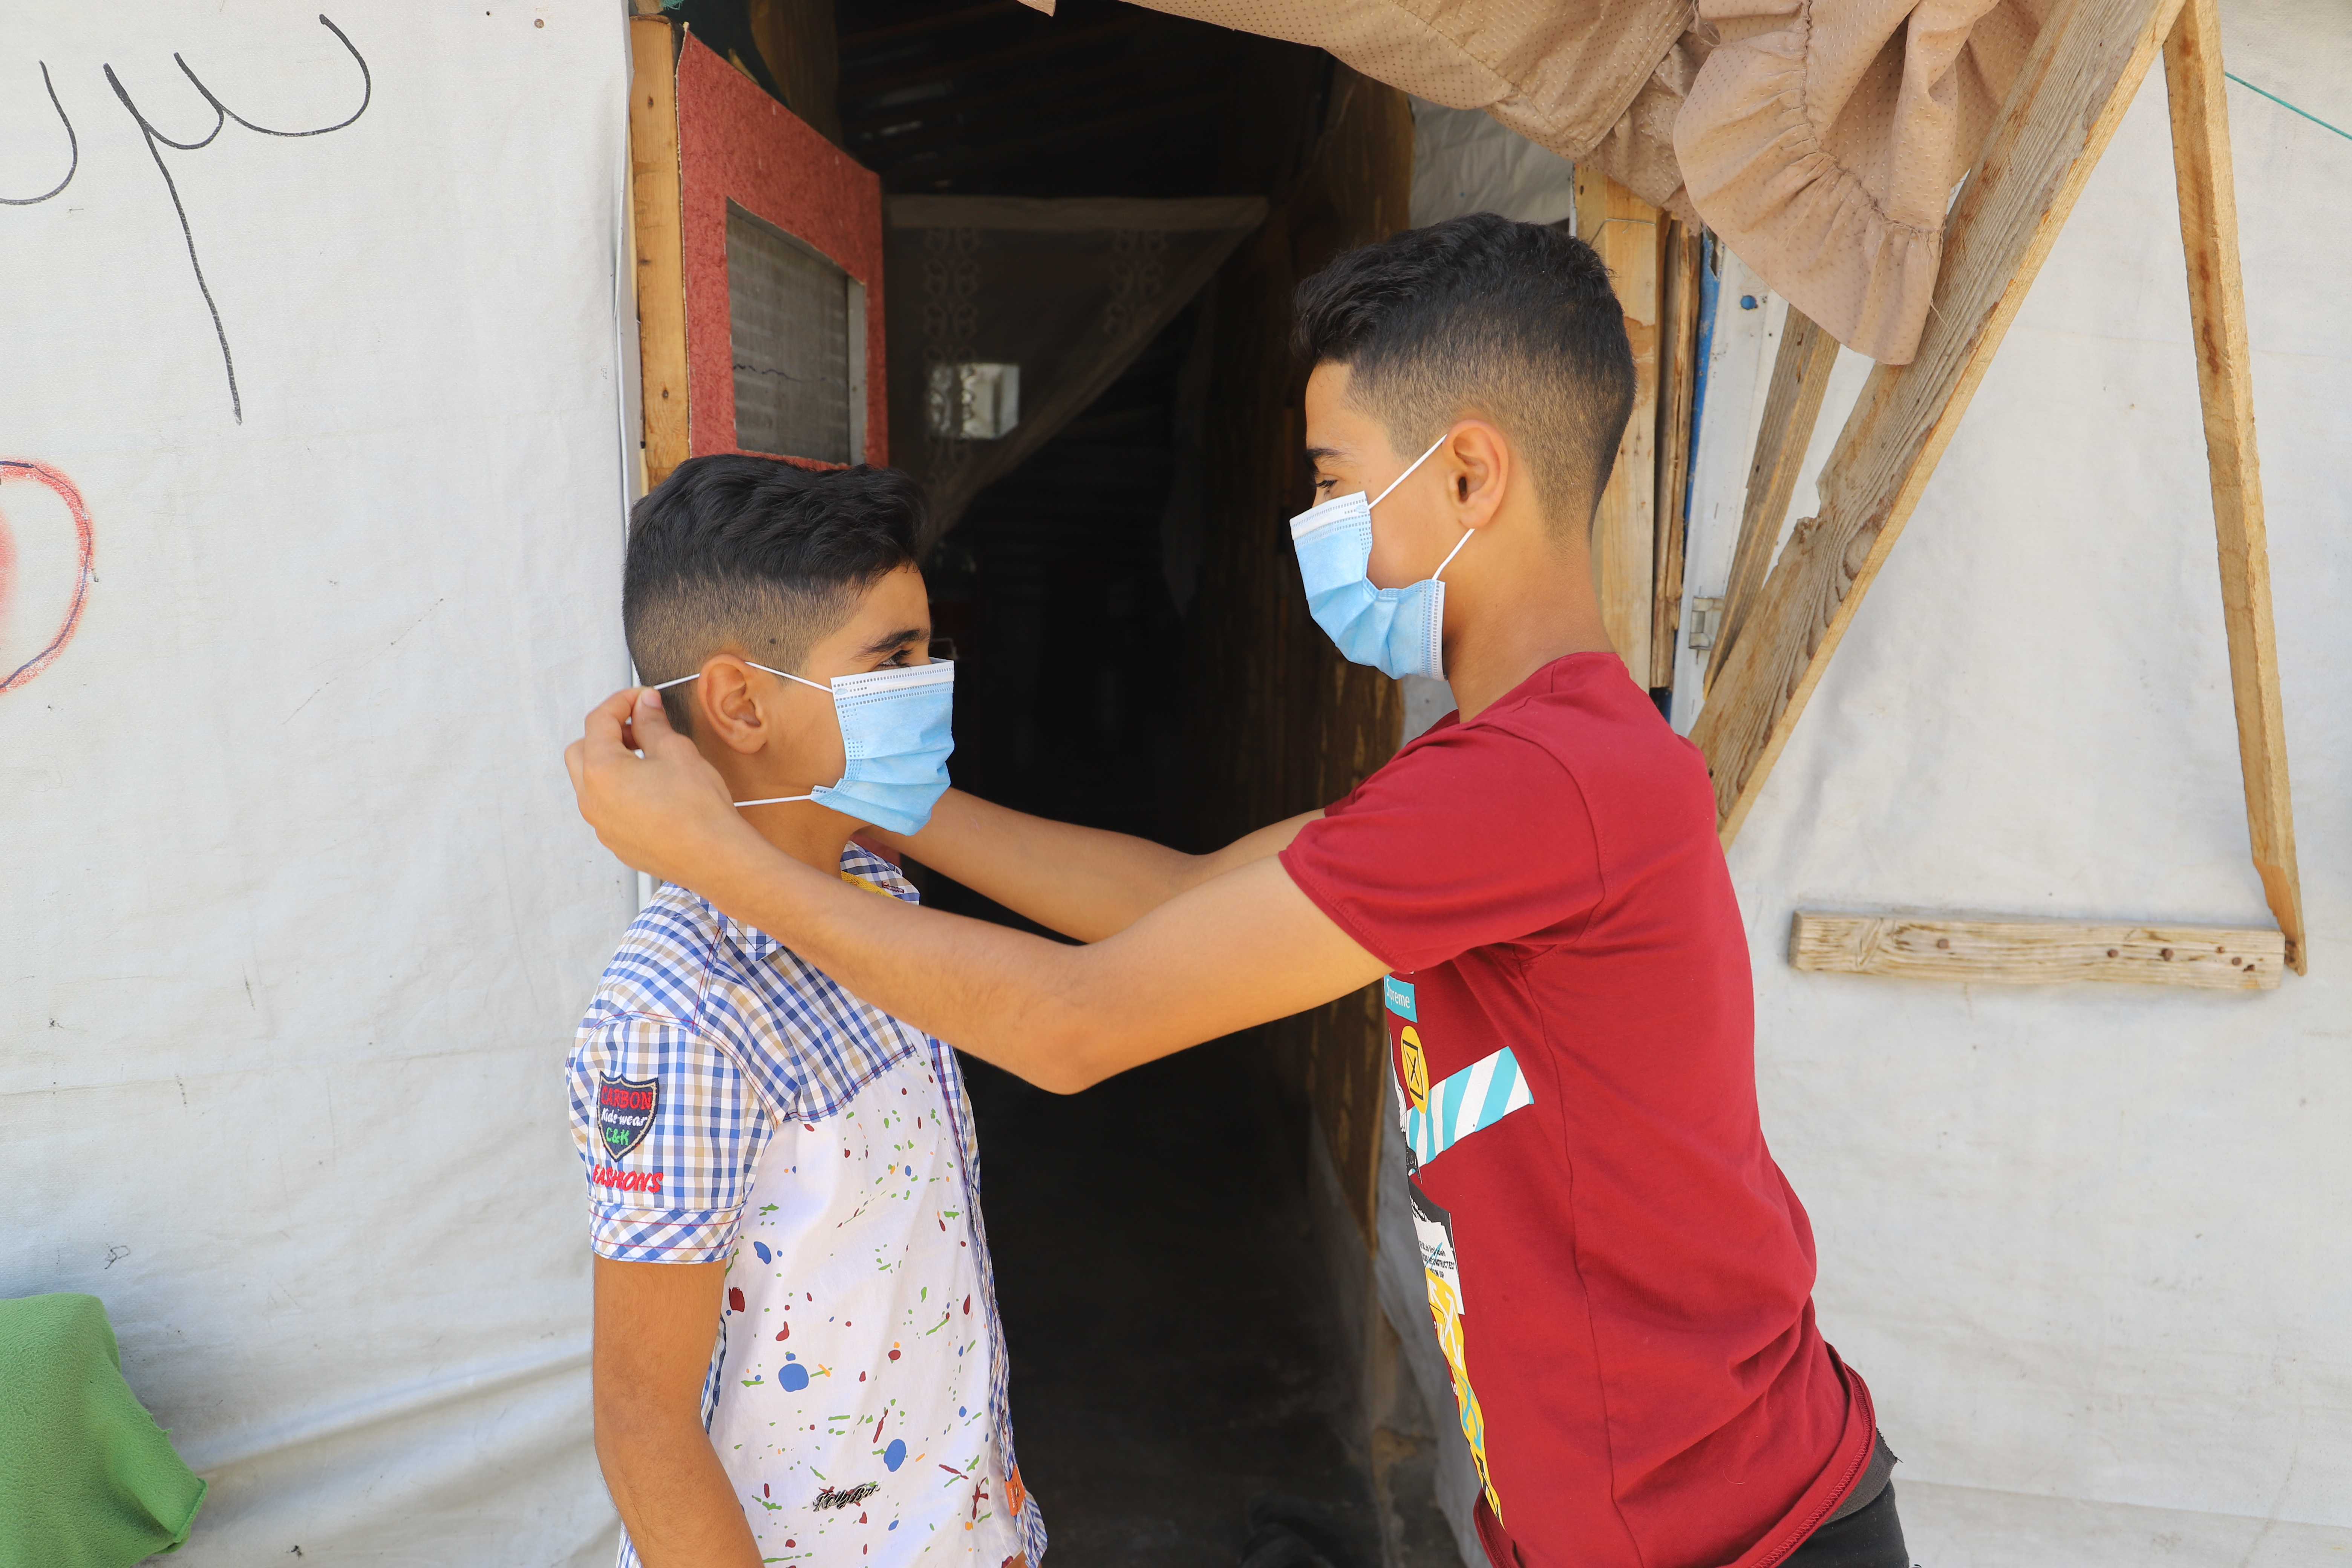 Ahmad putting a mask on his brother's face to keep him safe